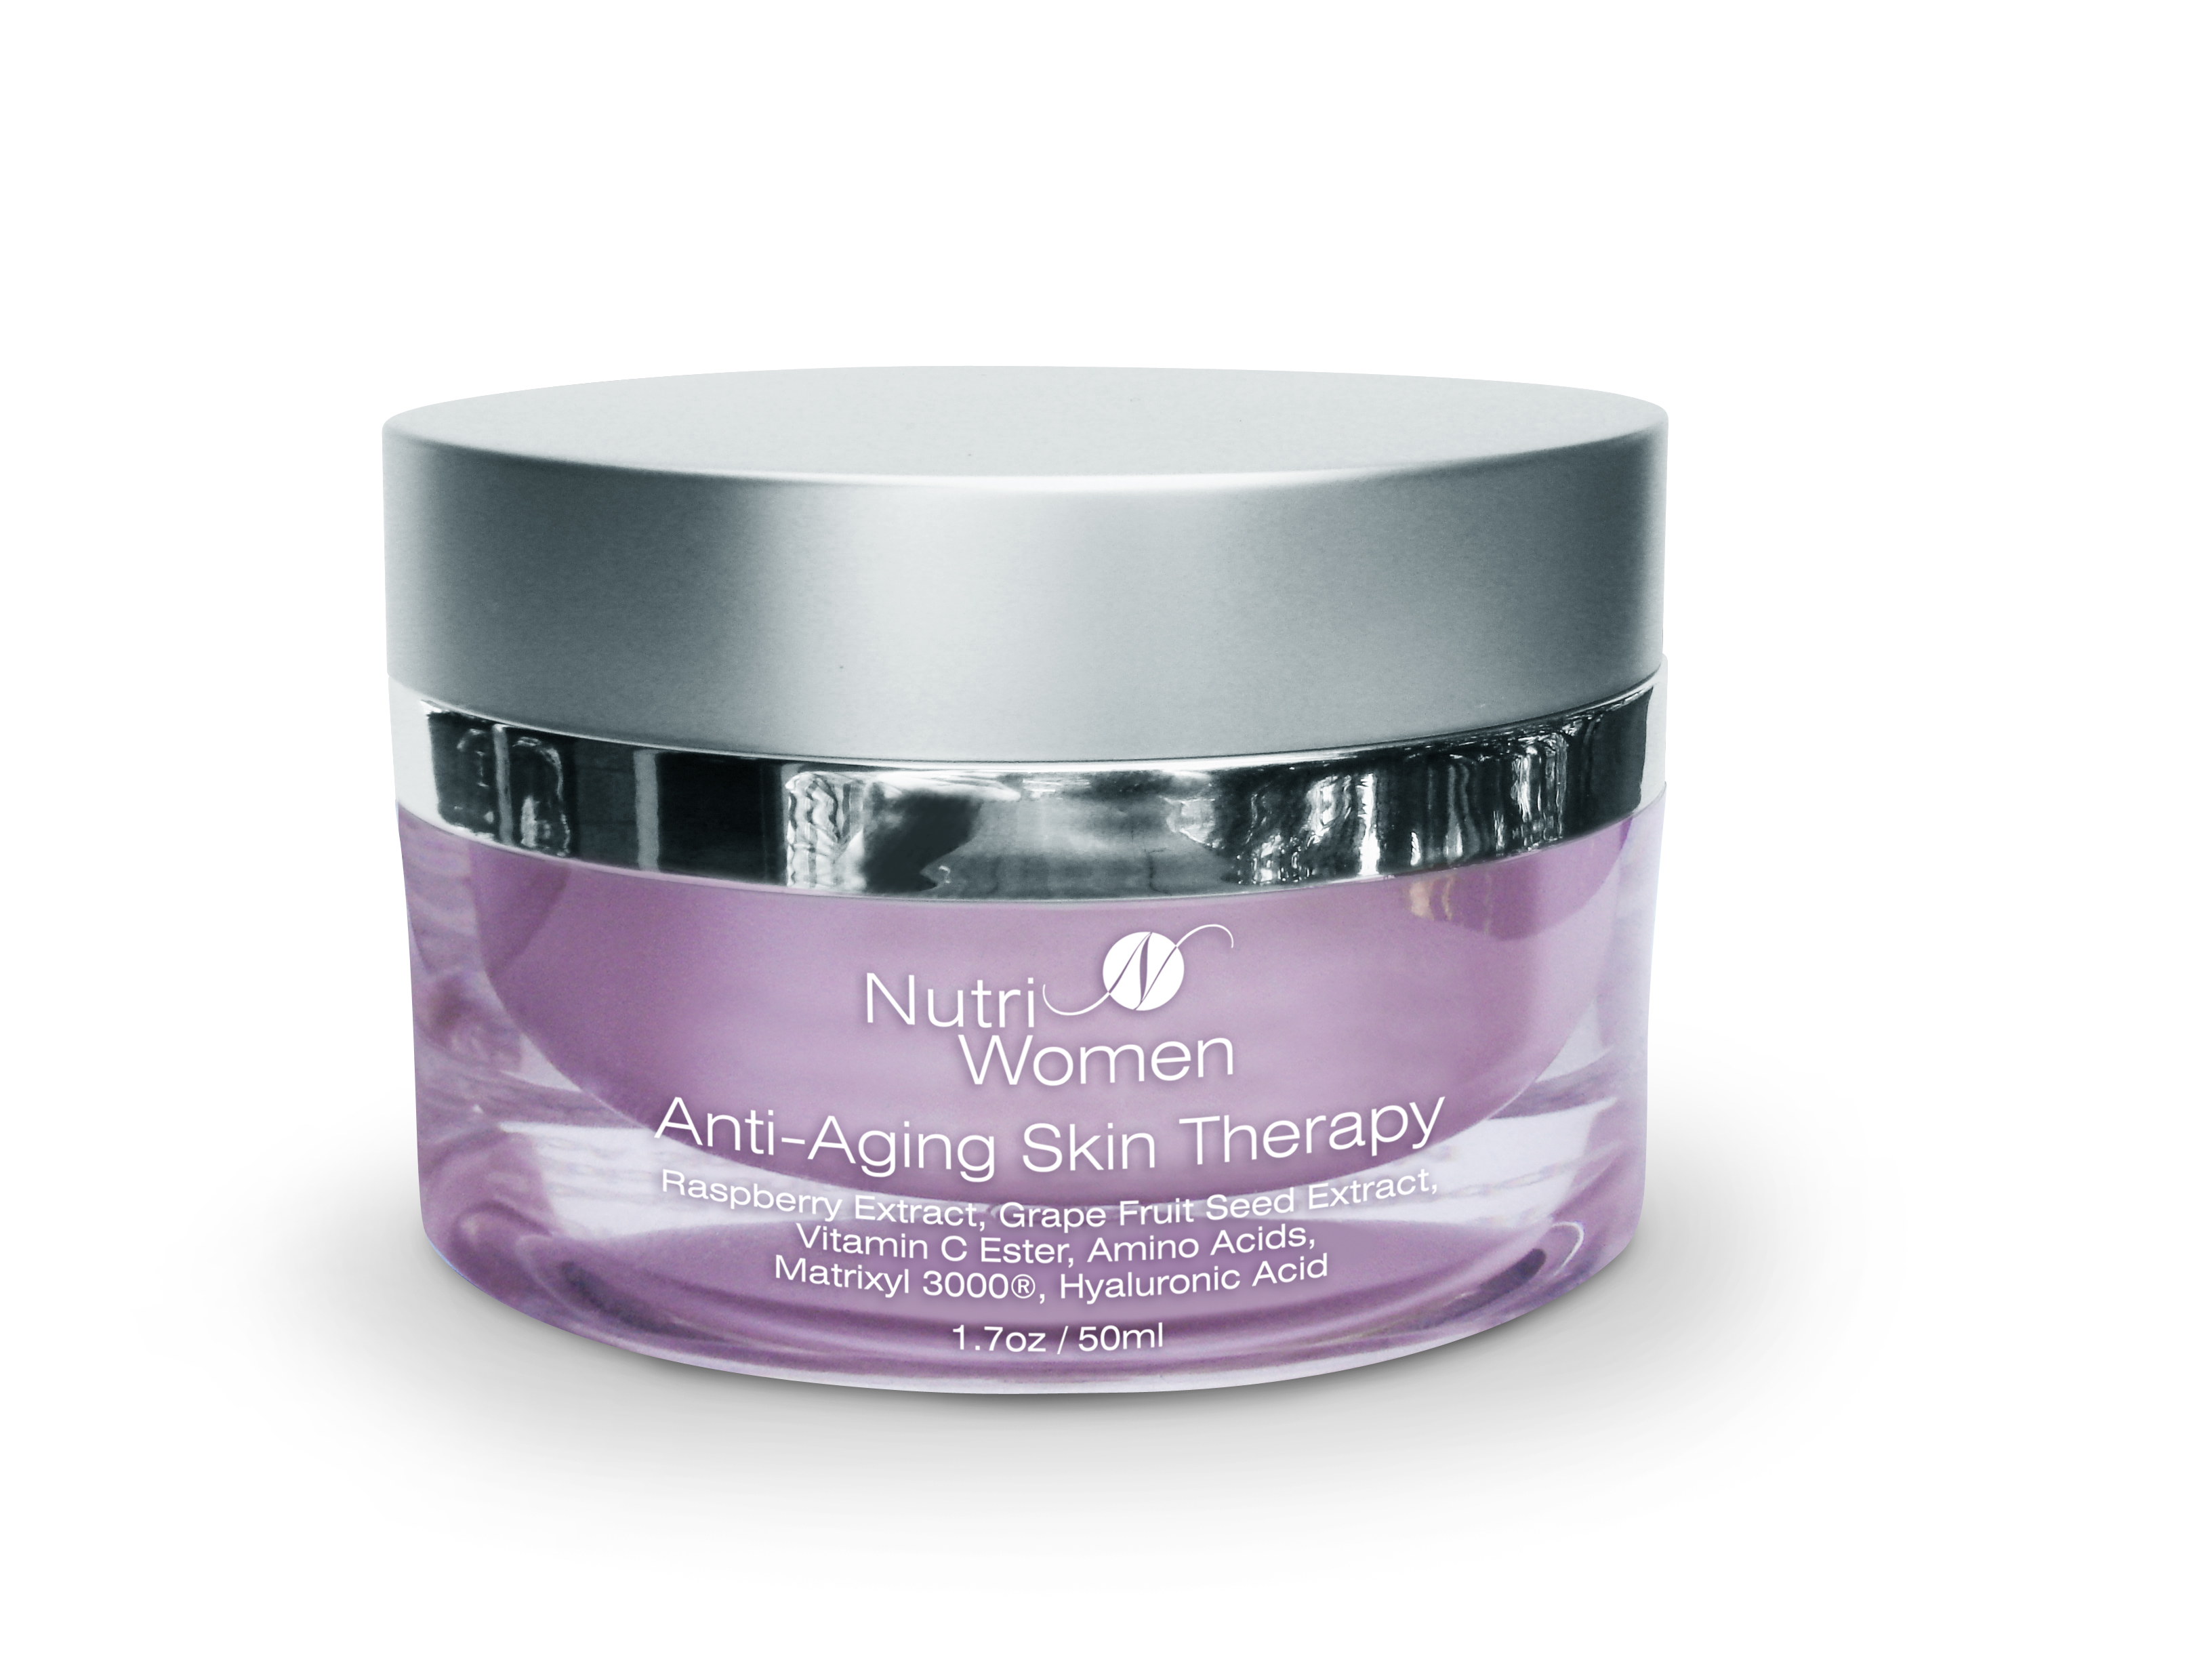 nutriwomen anti aging skin therapy cream review lipgloss. Black Bedroom Furniture Sets. Home Design Ideas